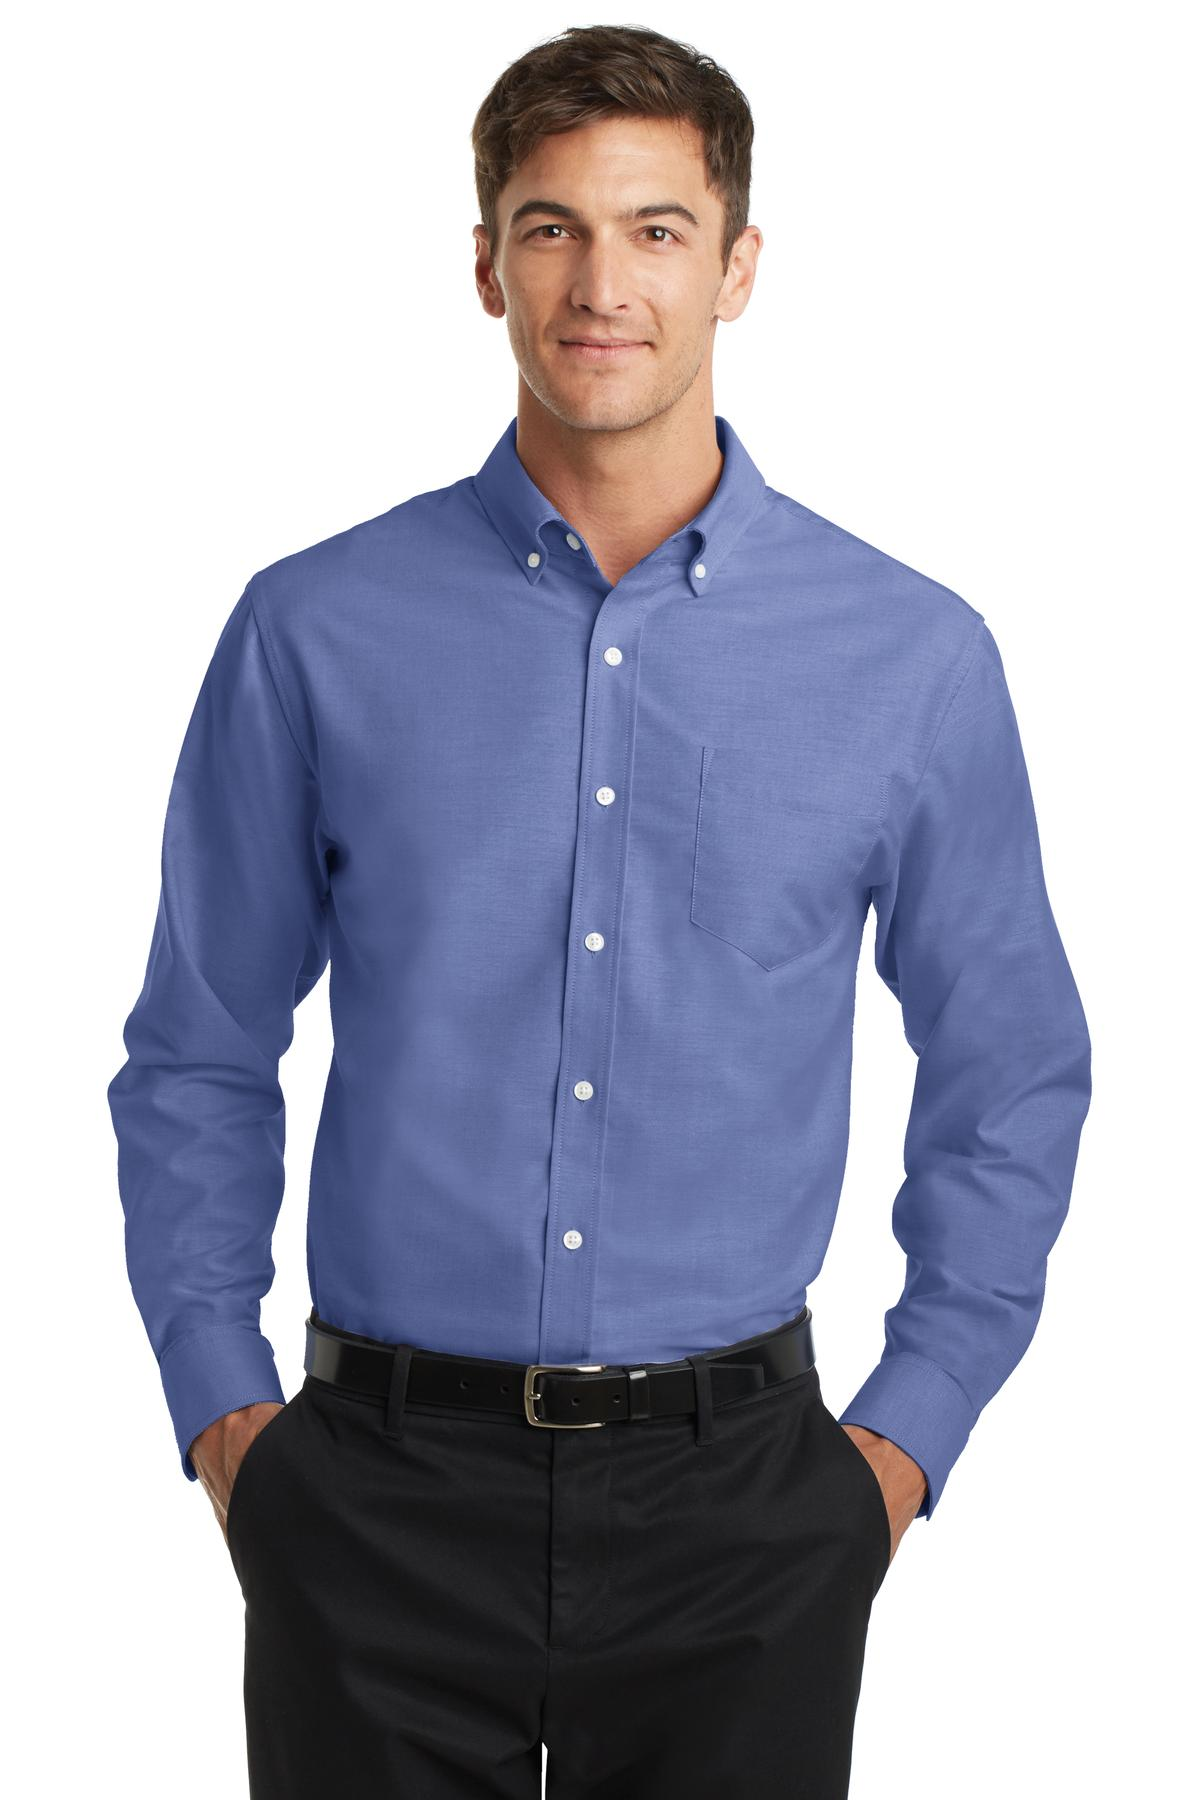 Strong Blue Port Authority Tall Silk Touch Polo.